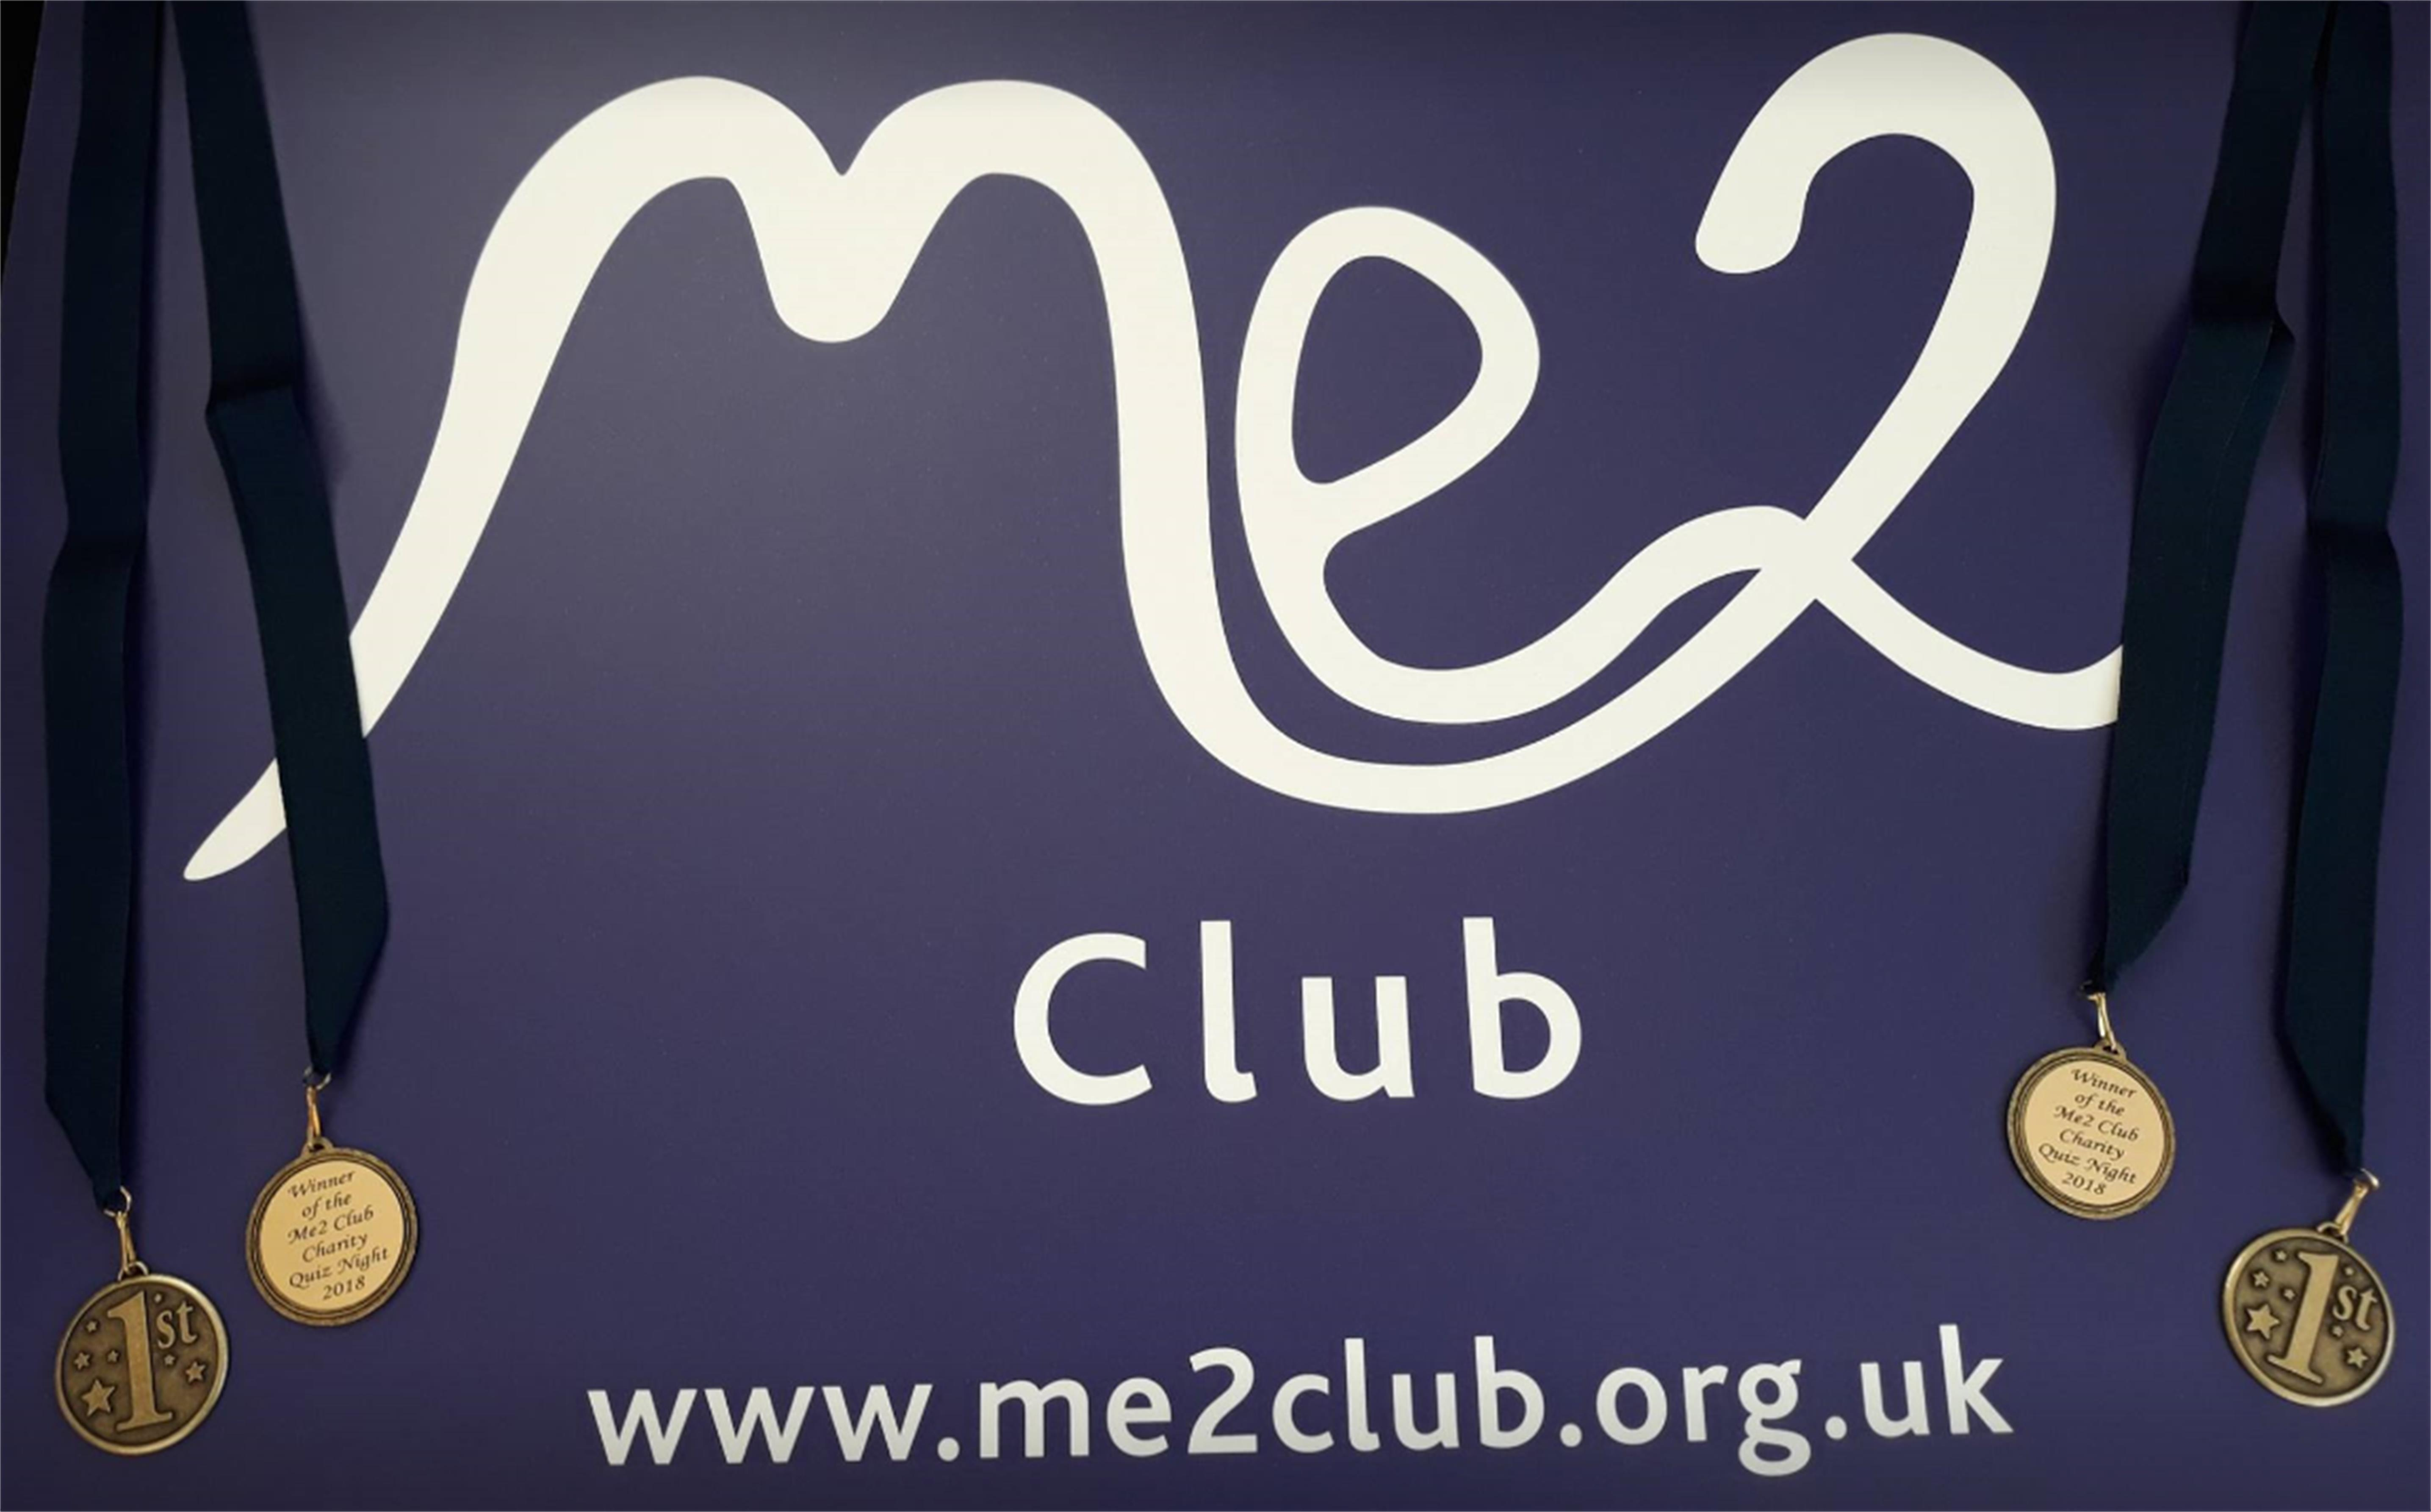 Local charities we support - Me2 club